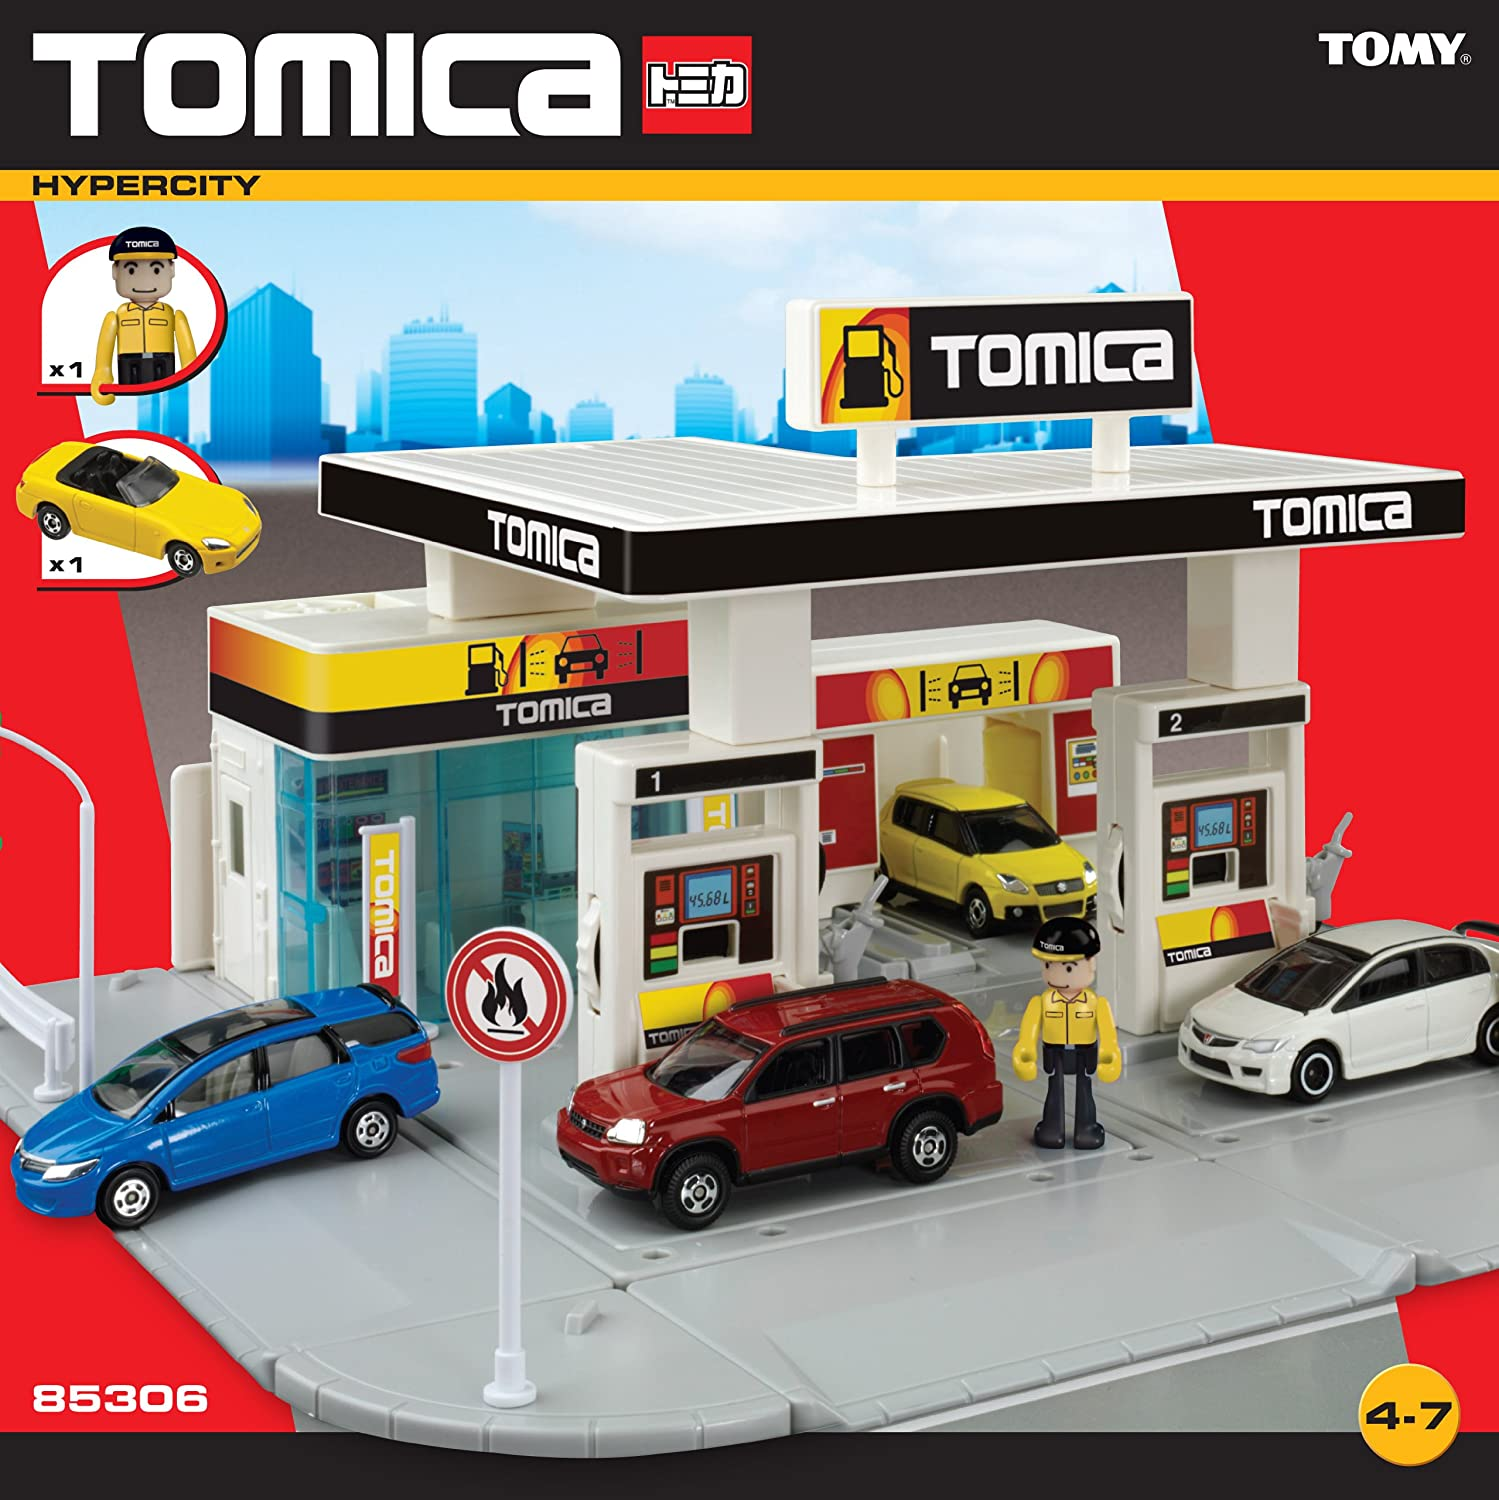 Amazon.com: Tomy Tomica estación de gasolina: Toys & Games